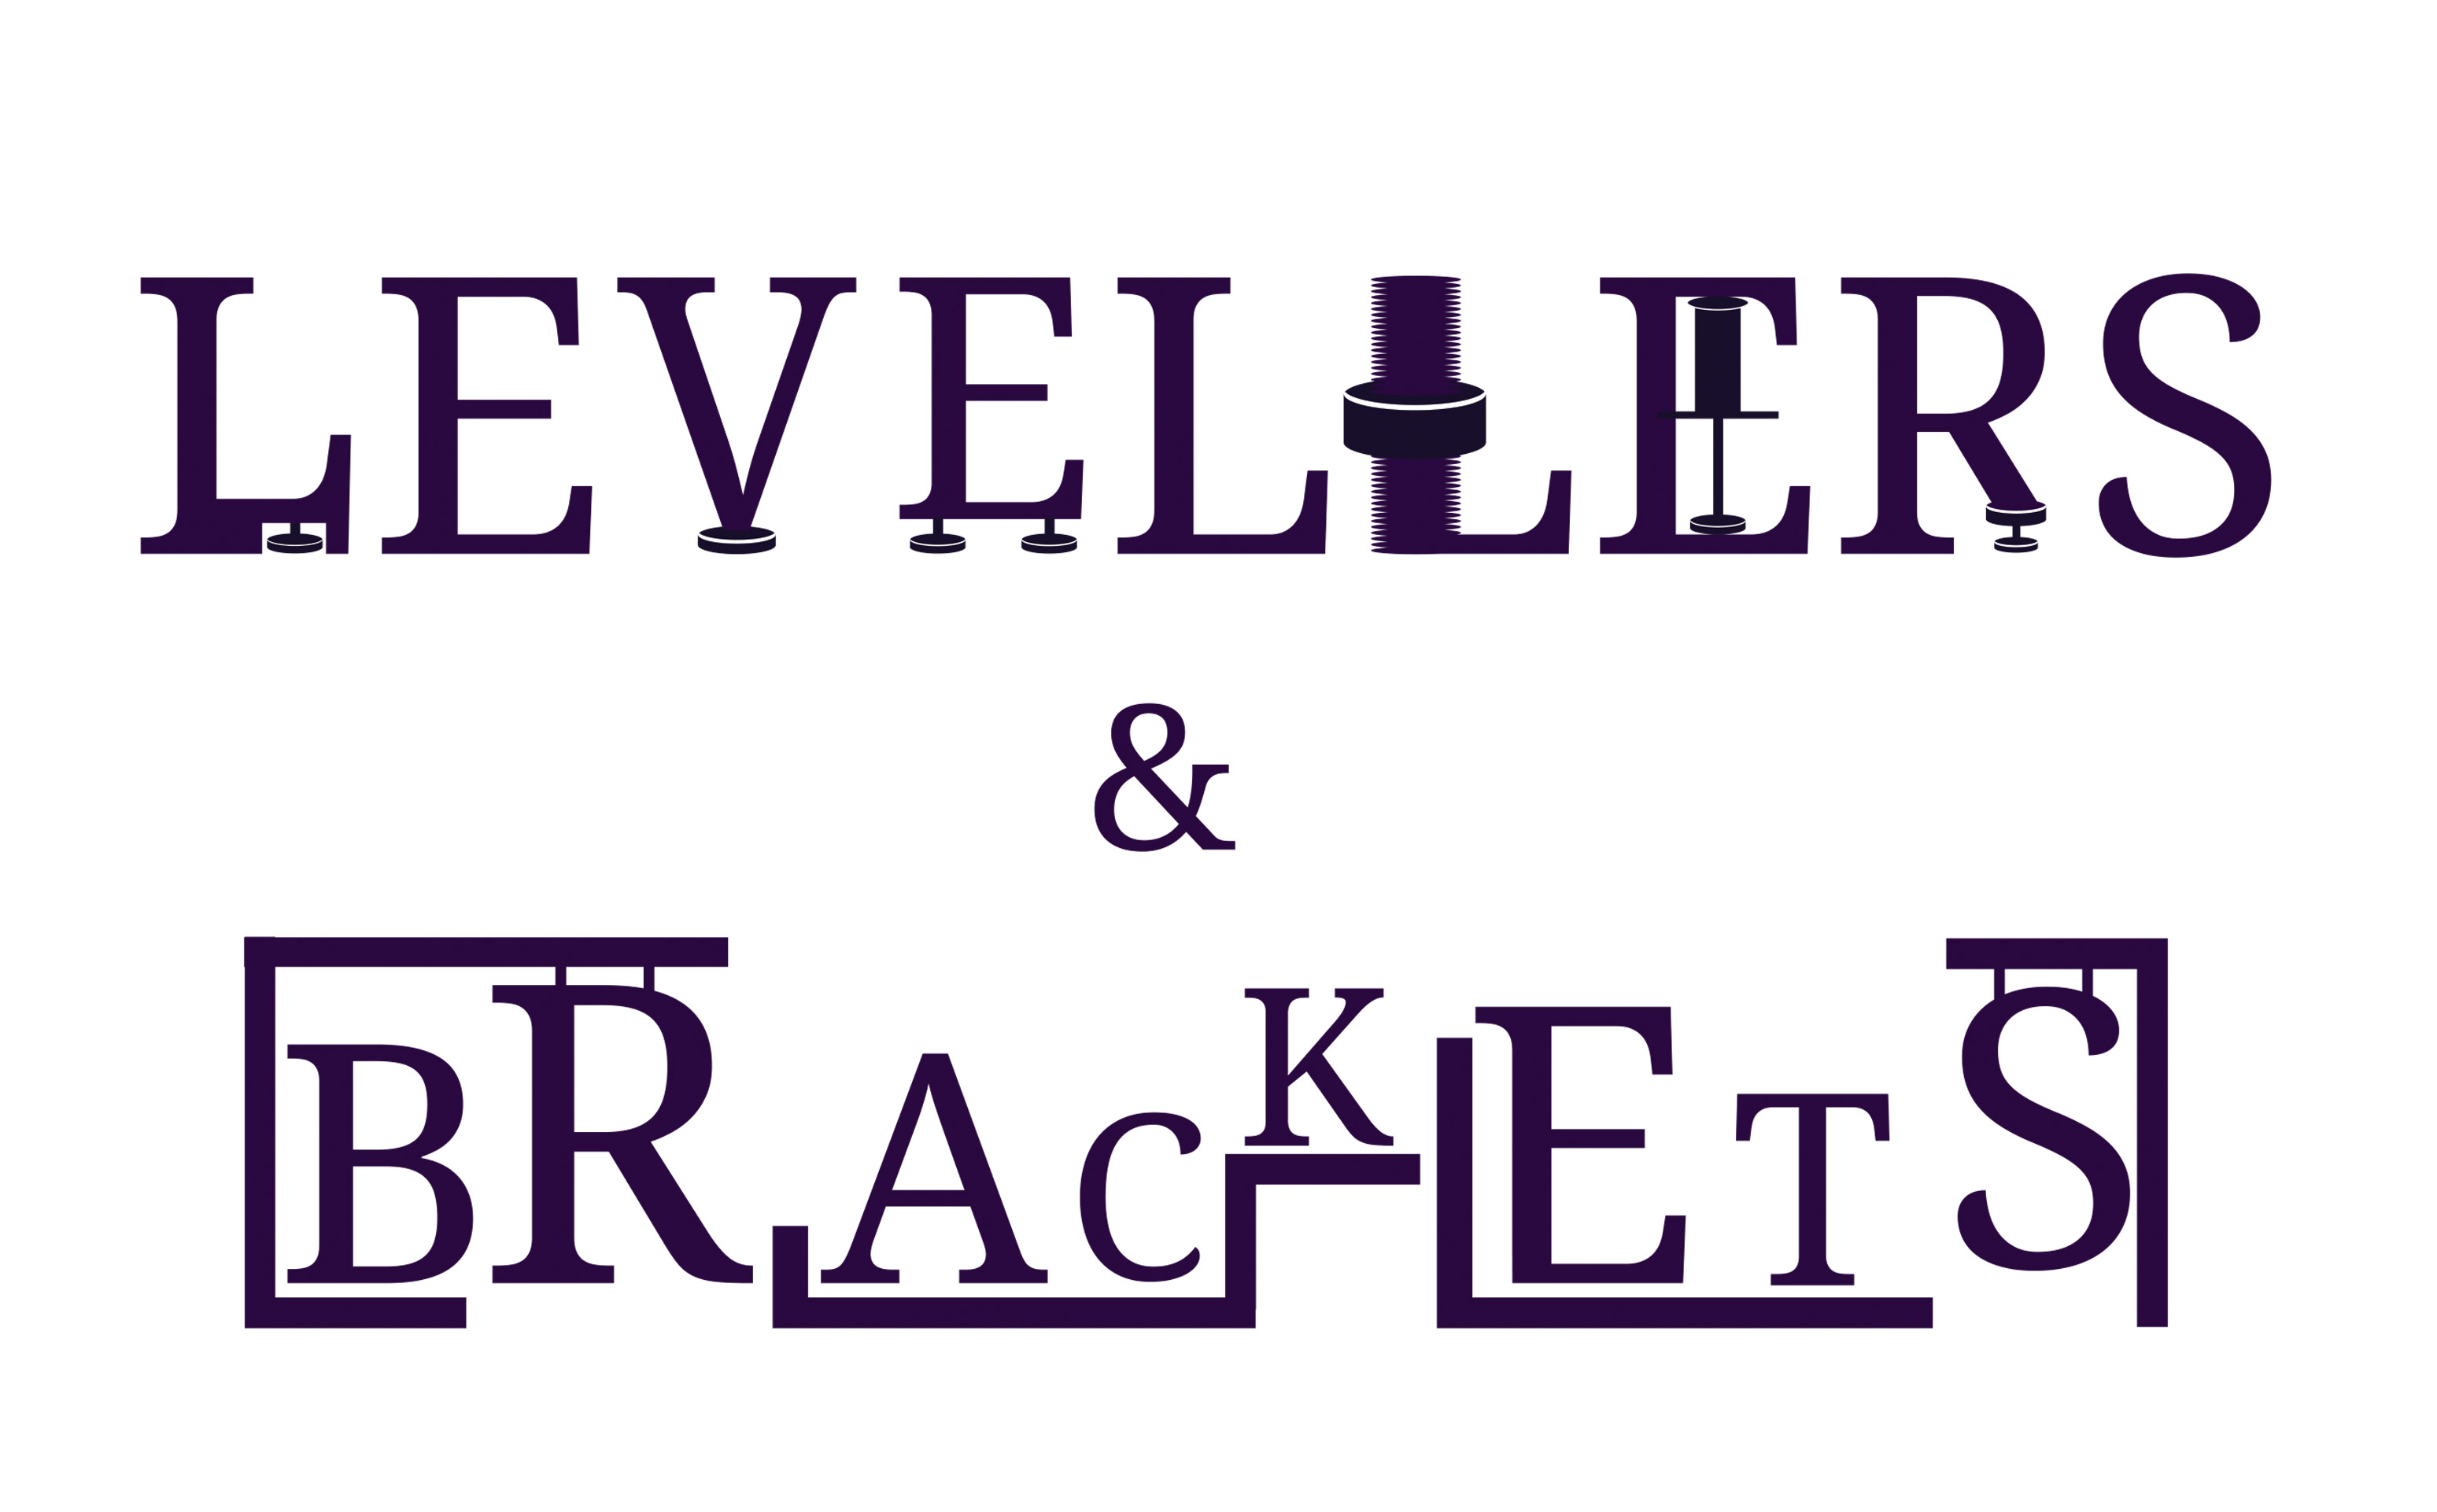 Levellers & Brackets